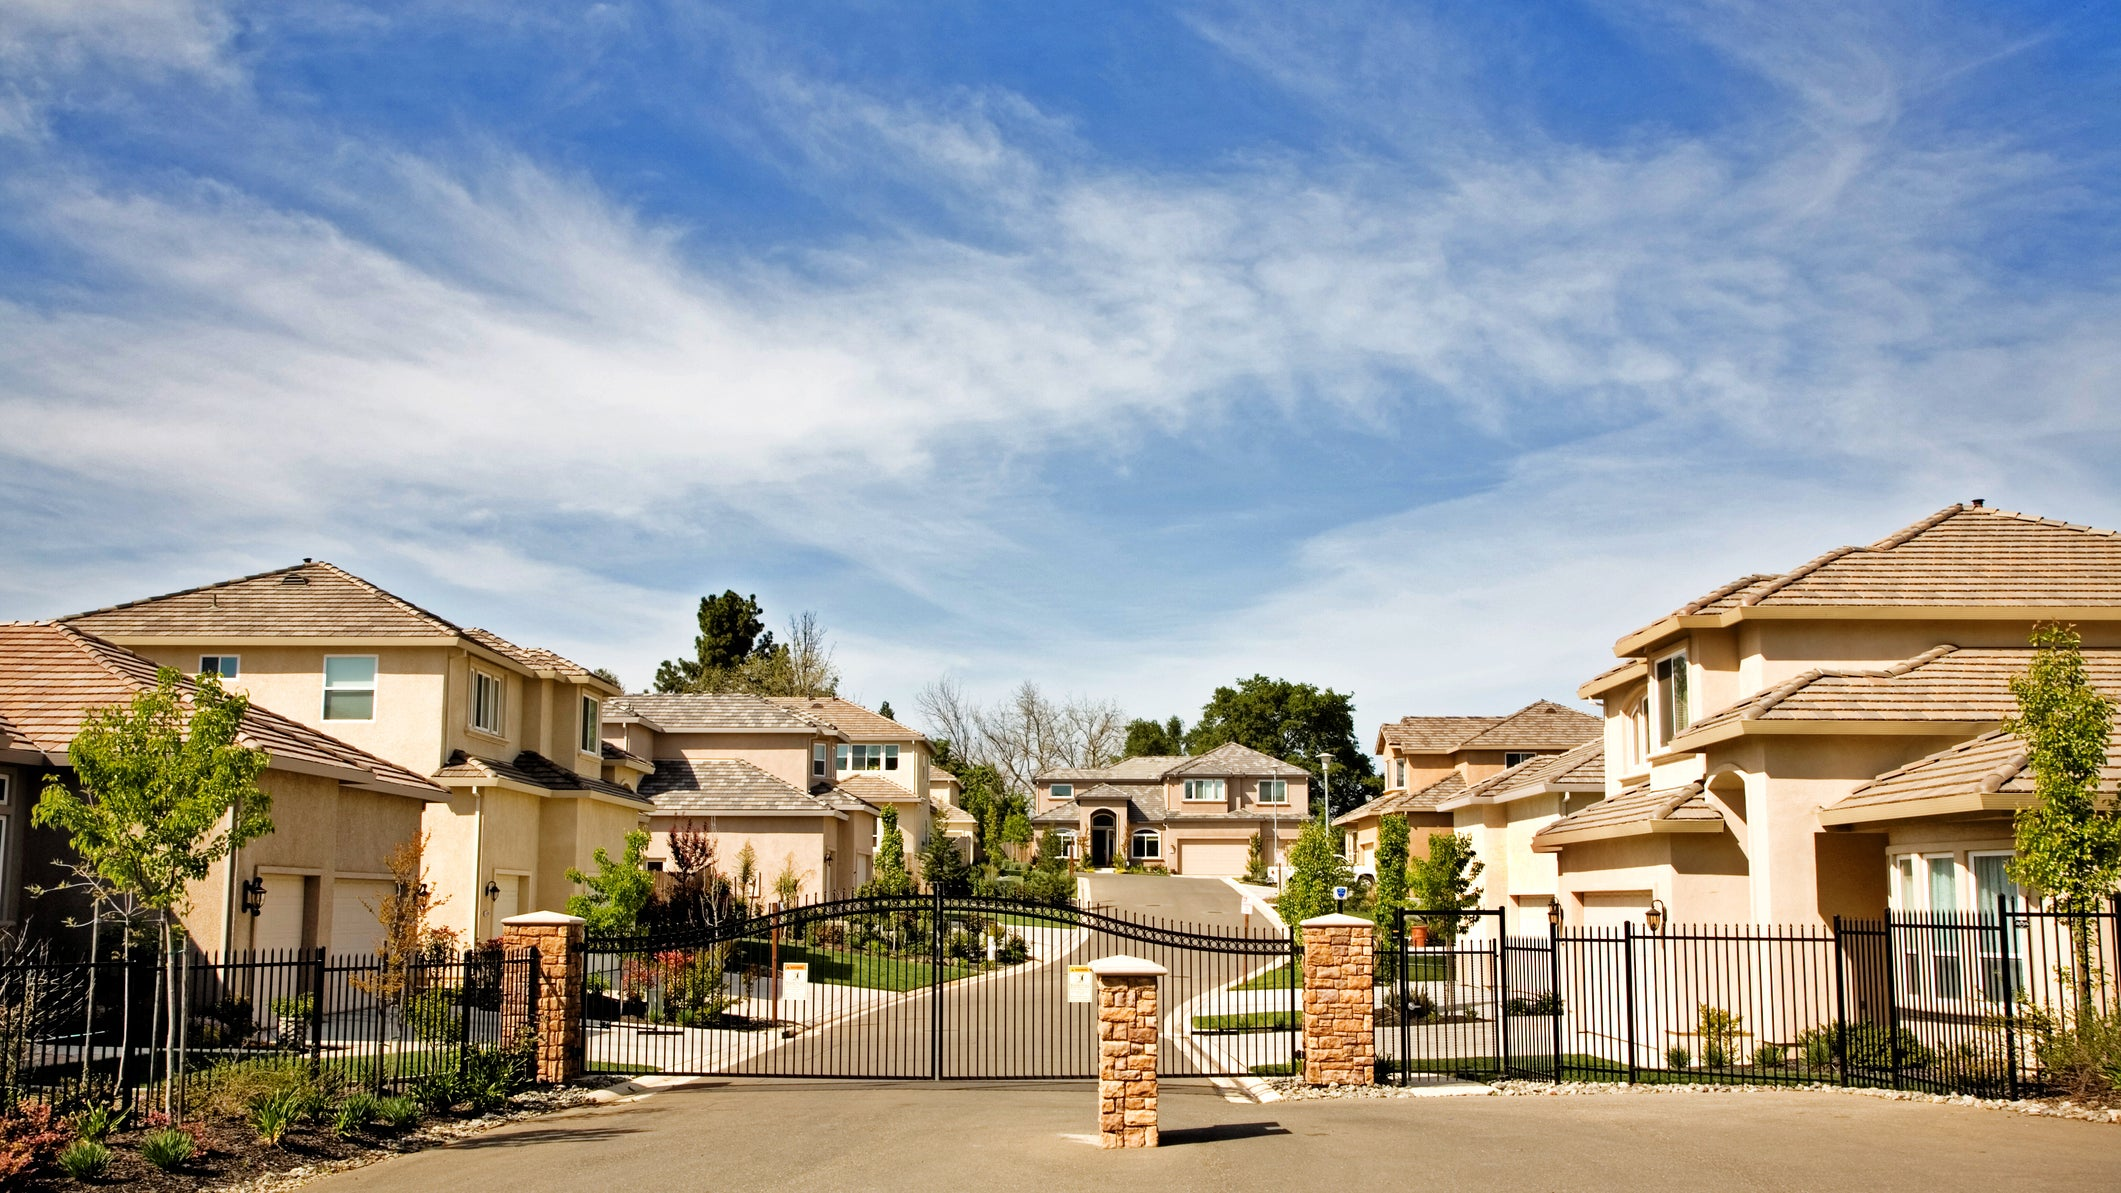 Should You Buy a Home in a Gated Community? | Millionacres